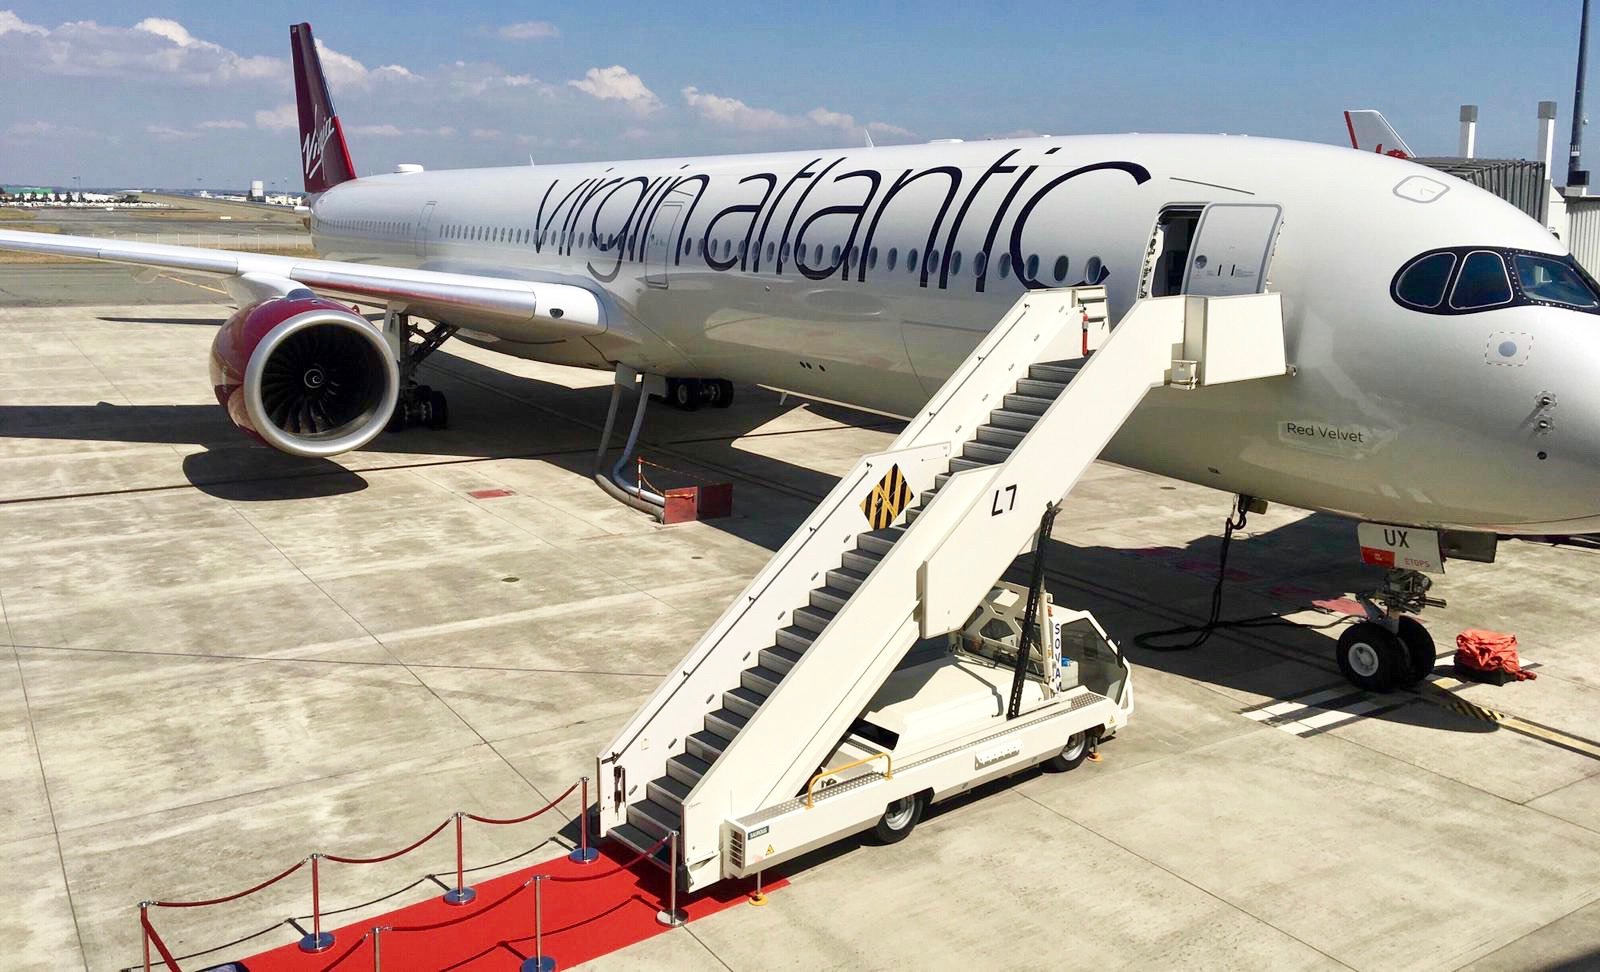 Un A350 de Virgin Atlantic estrena la banda ancha en vuelo GX Aviation de Inmarsat